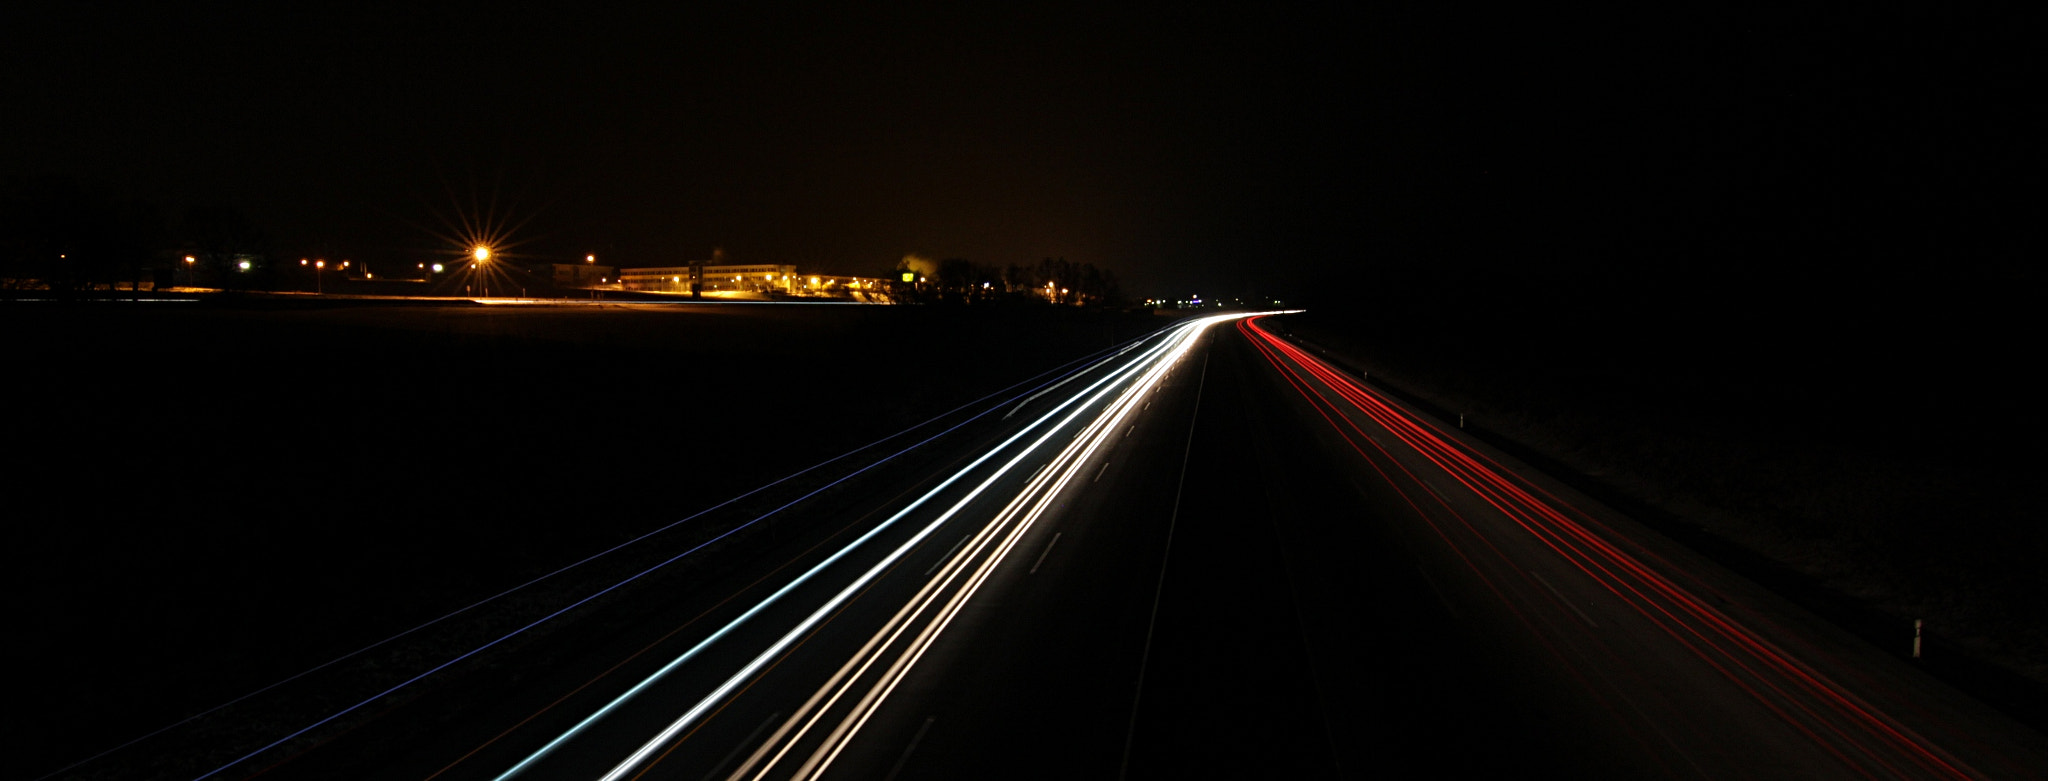 Photograph Superhighway by HankknaH on 500px